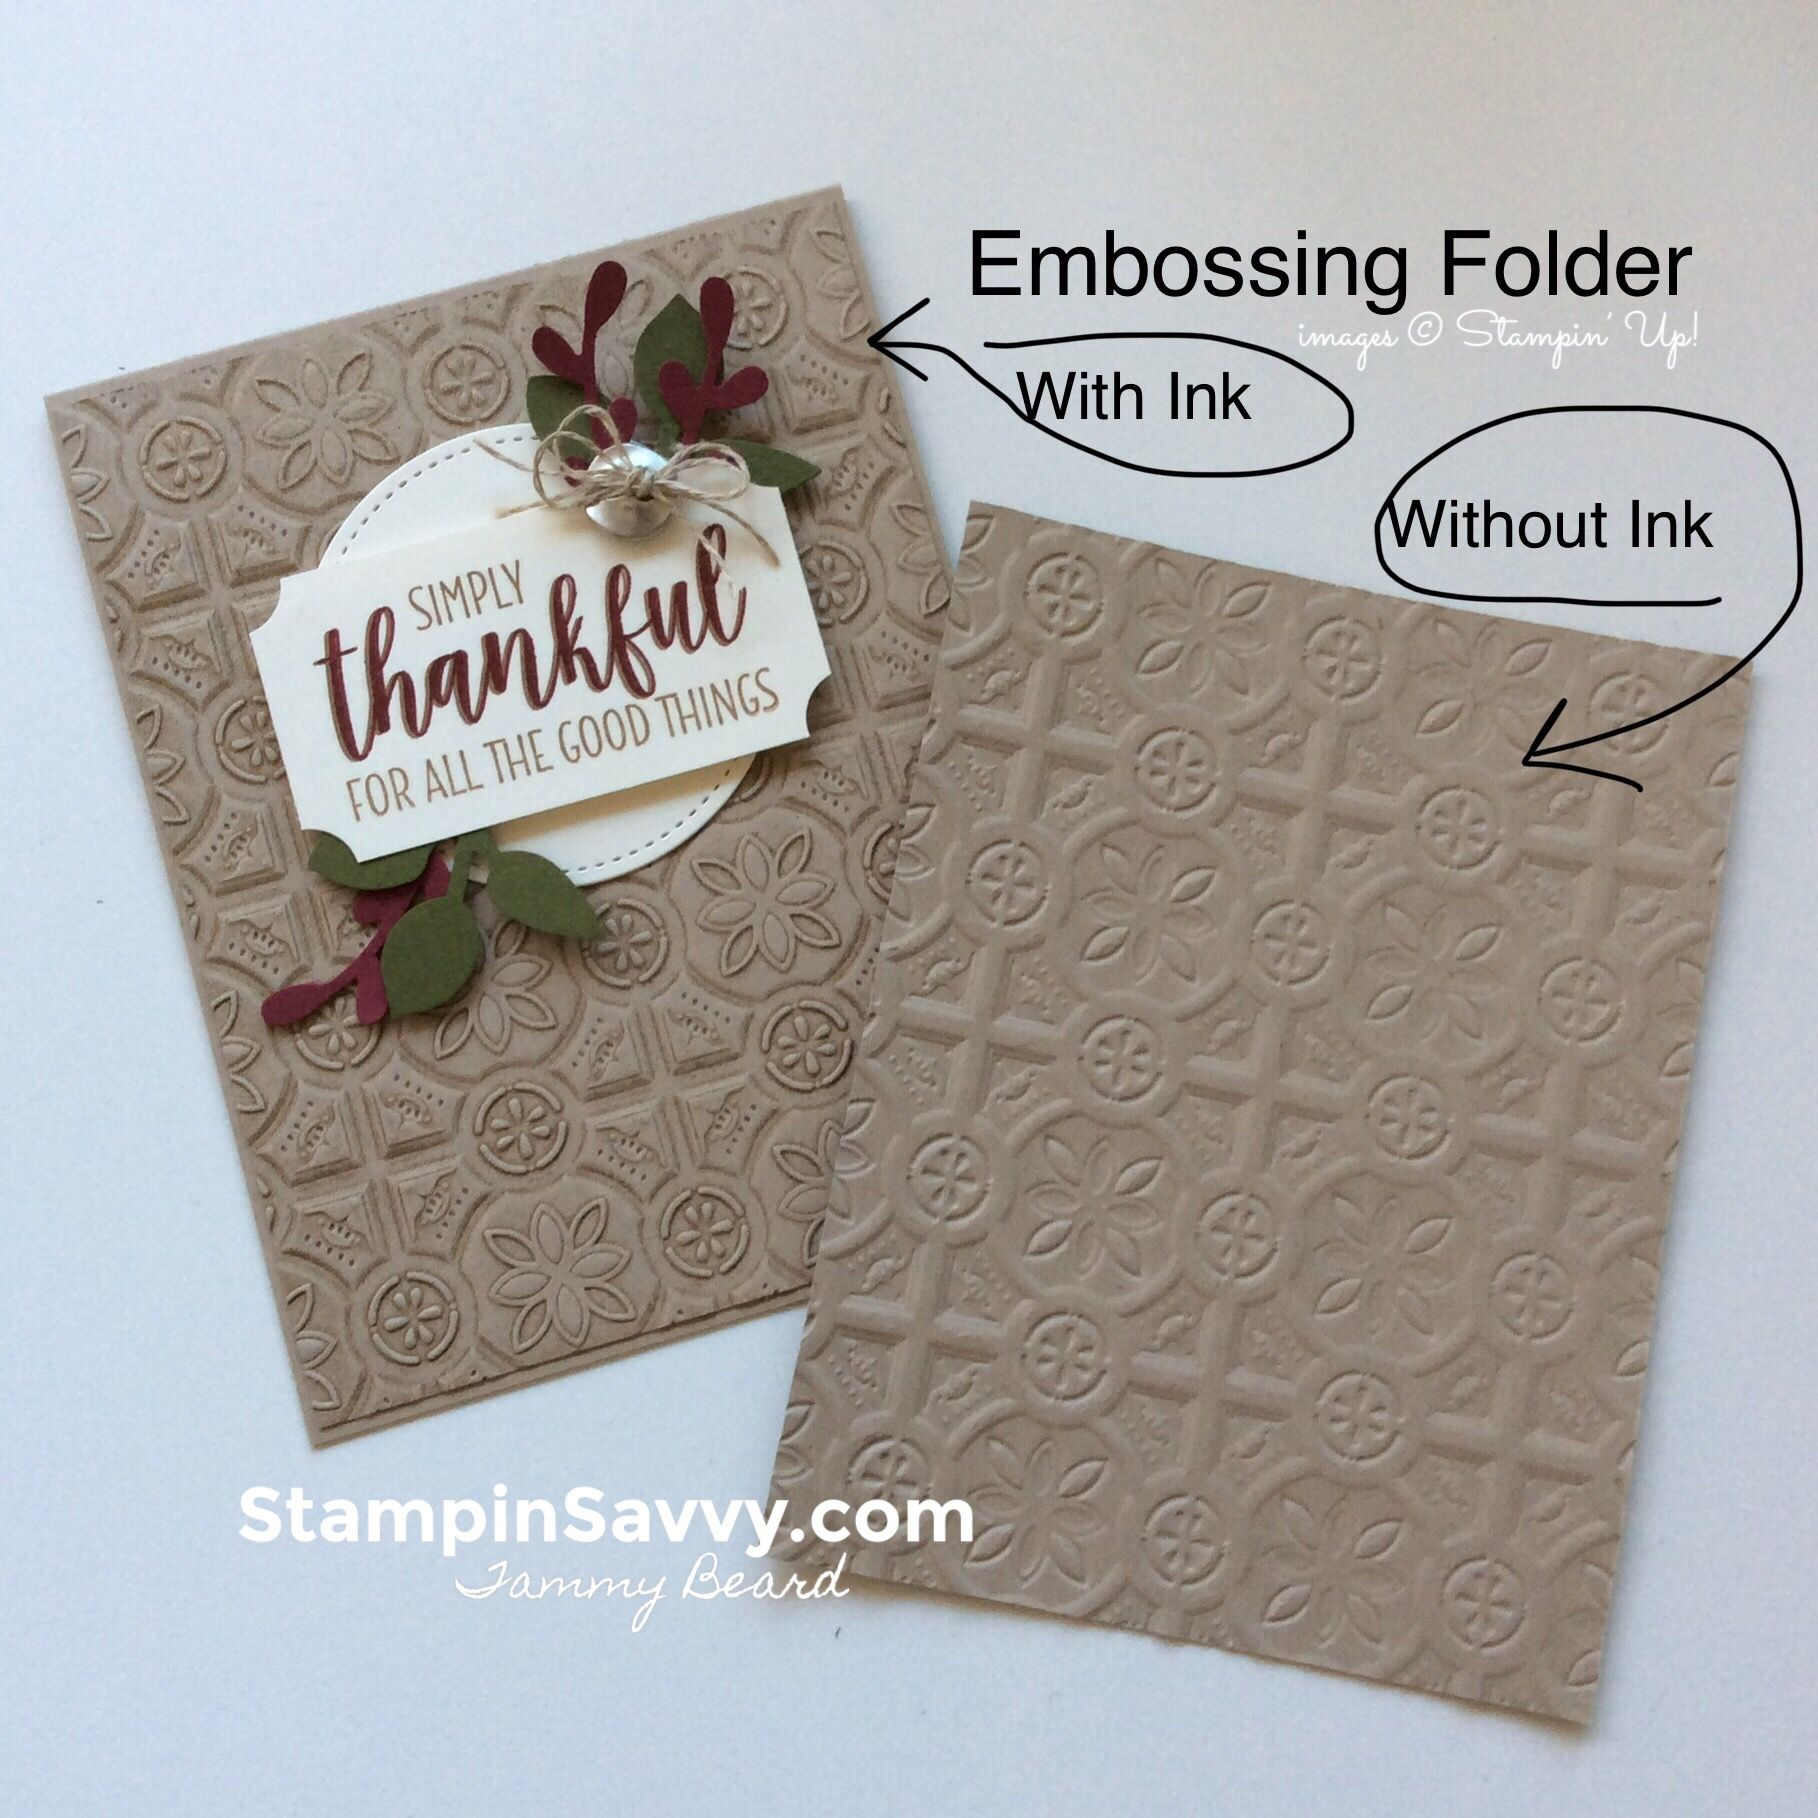 How To Add Texture To Cards With Embossing Folders Stampin Savvy Paper Craft Projects Handmade Paper Handmade Paper Crafts